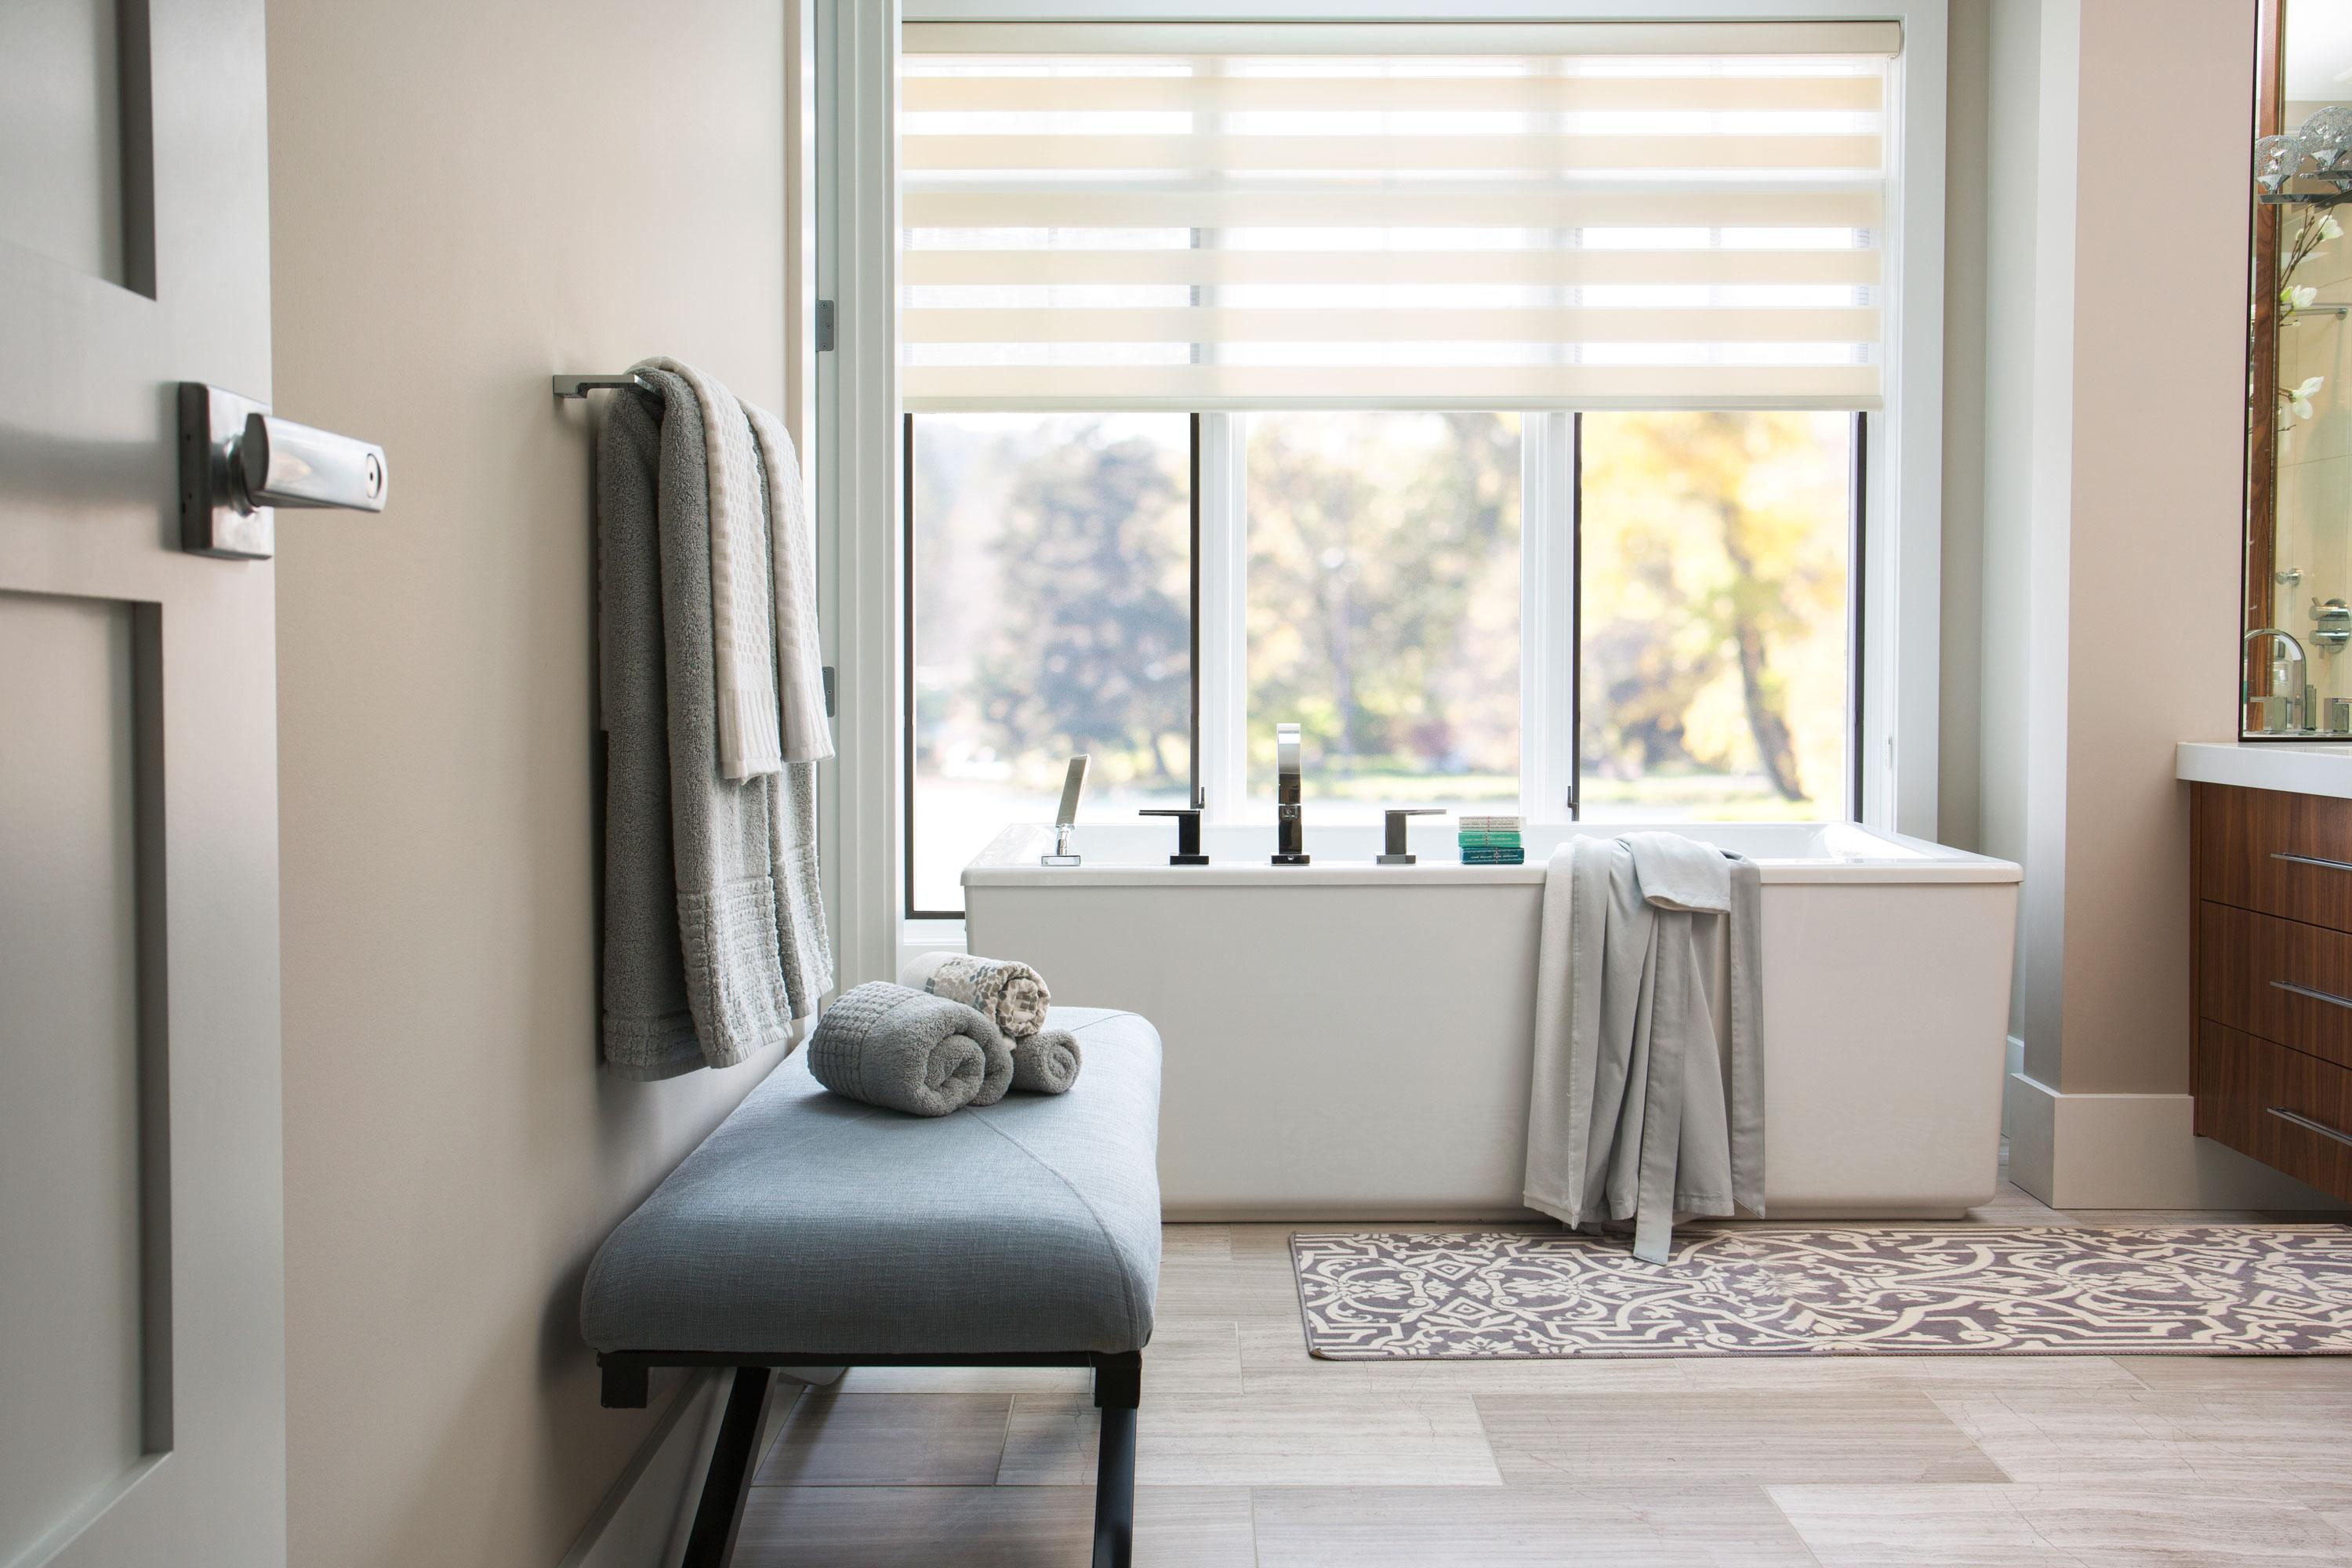 11 Quick Upgrades to Give Your Bathroom Before Company Arrives for ...